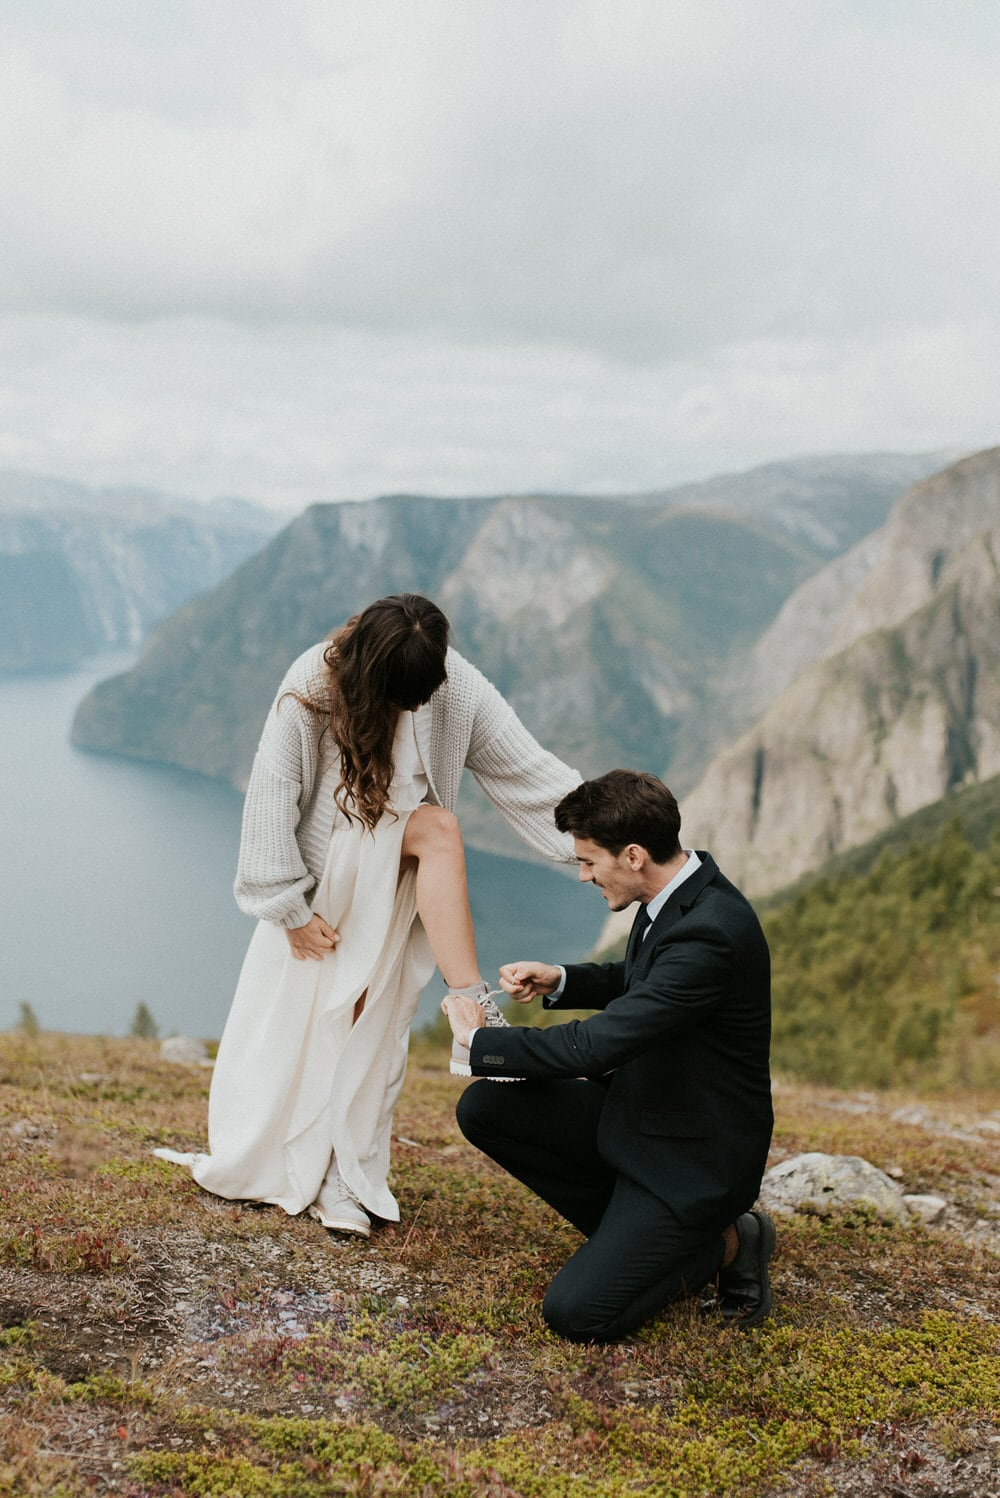 bride and groom hiking fashion wedding attire